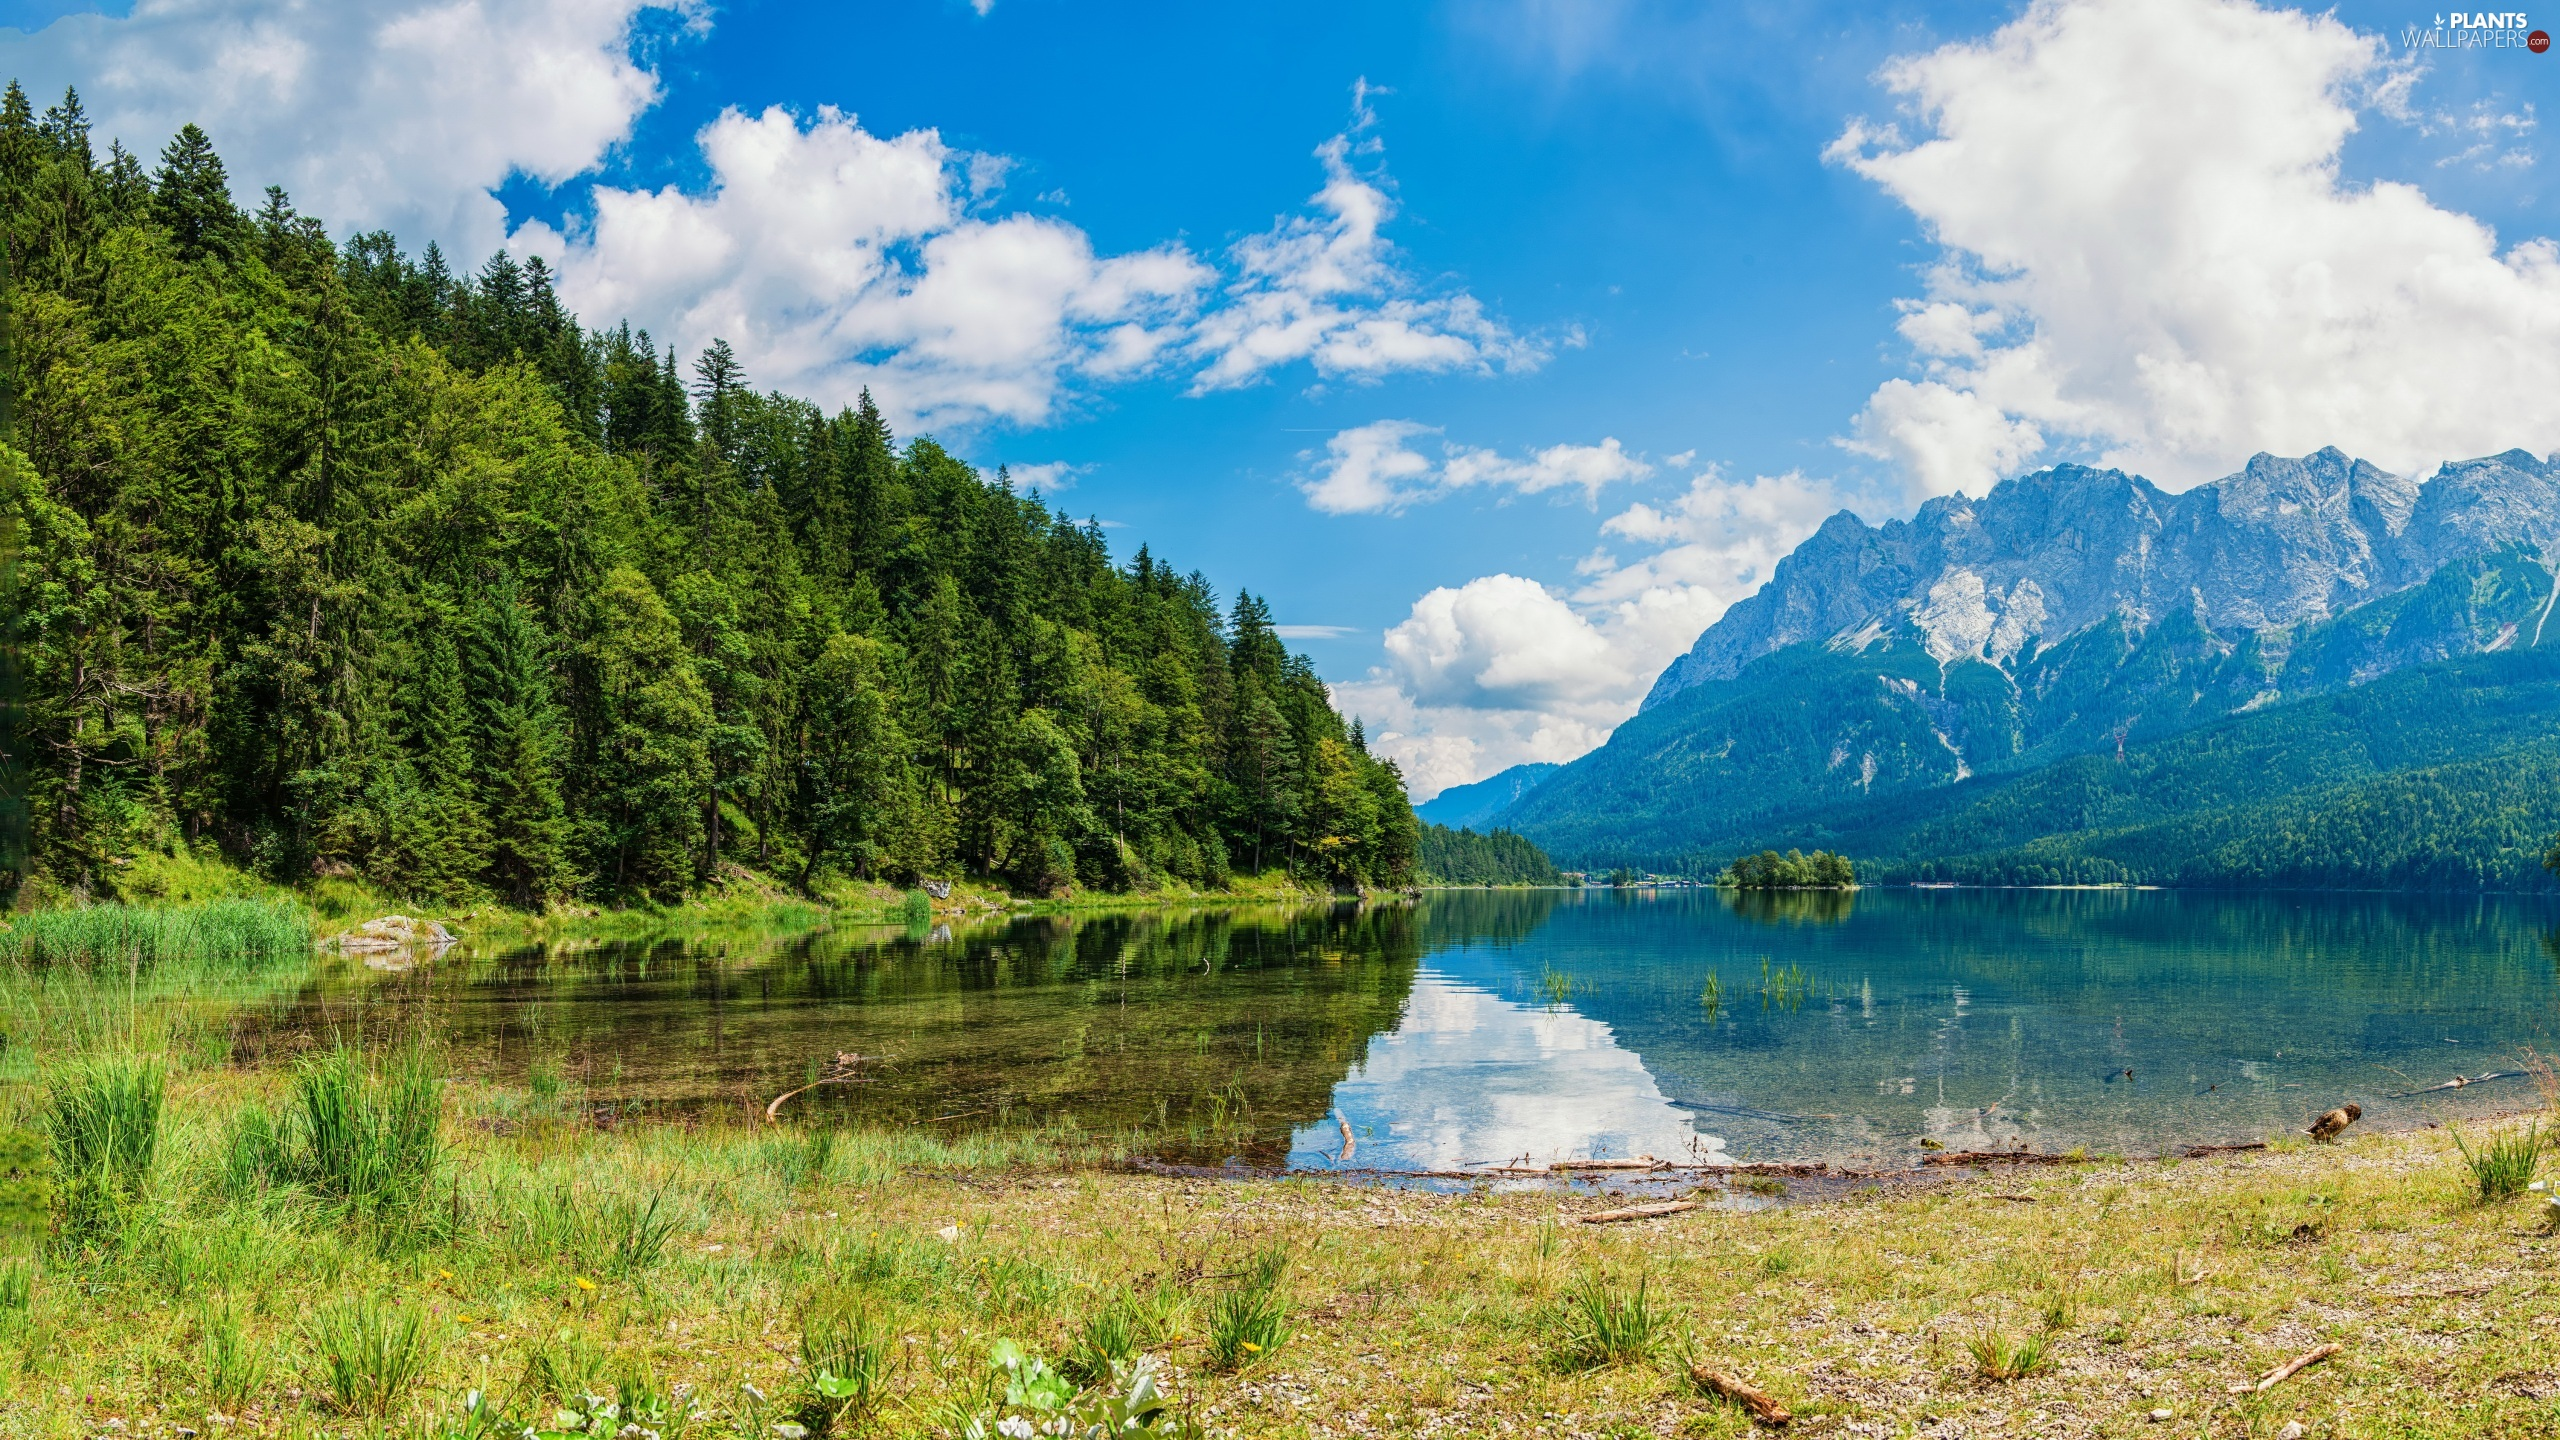 trees, reflection, forest, lake, Mountains, viewes, clouds